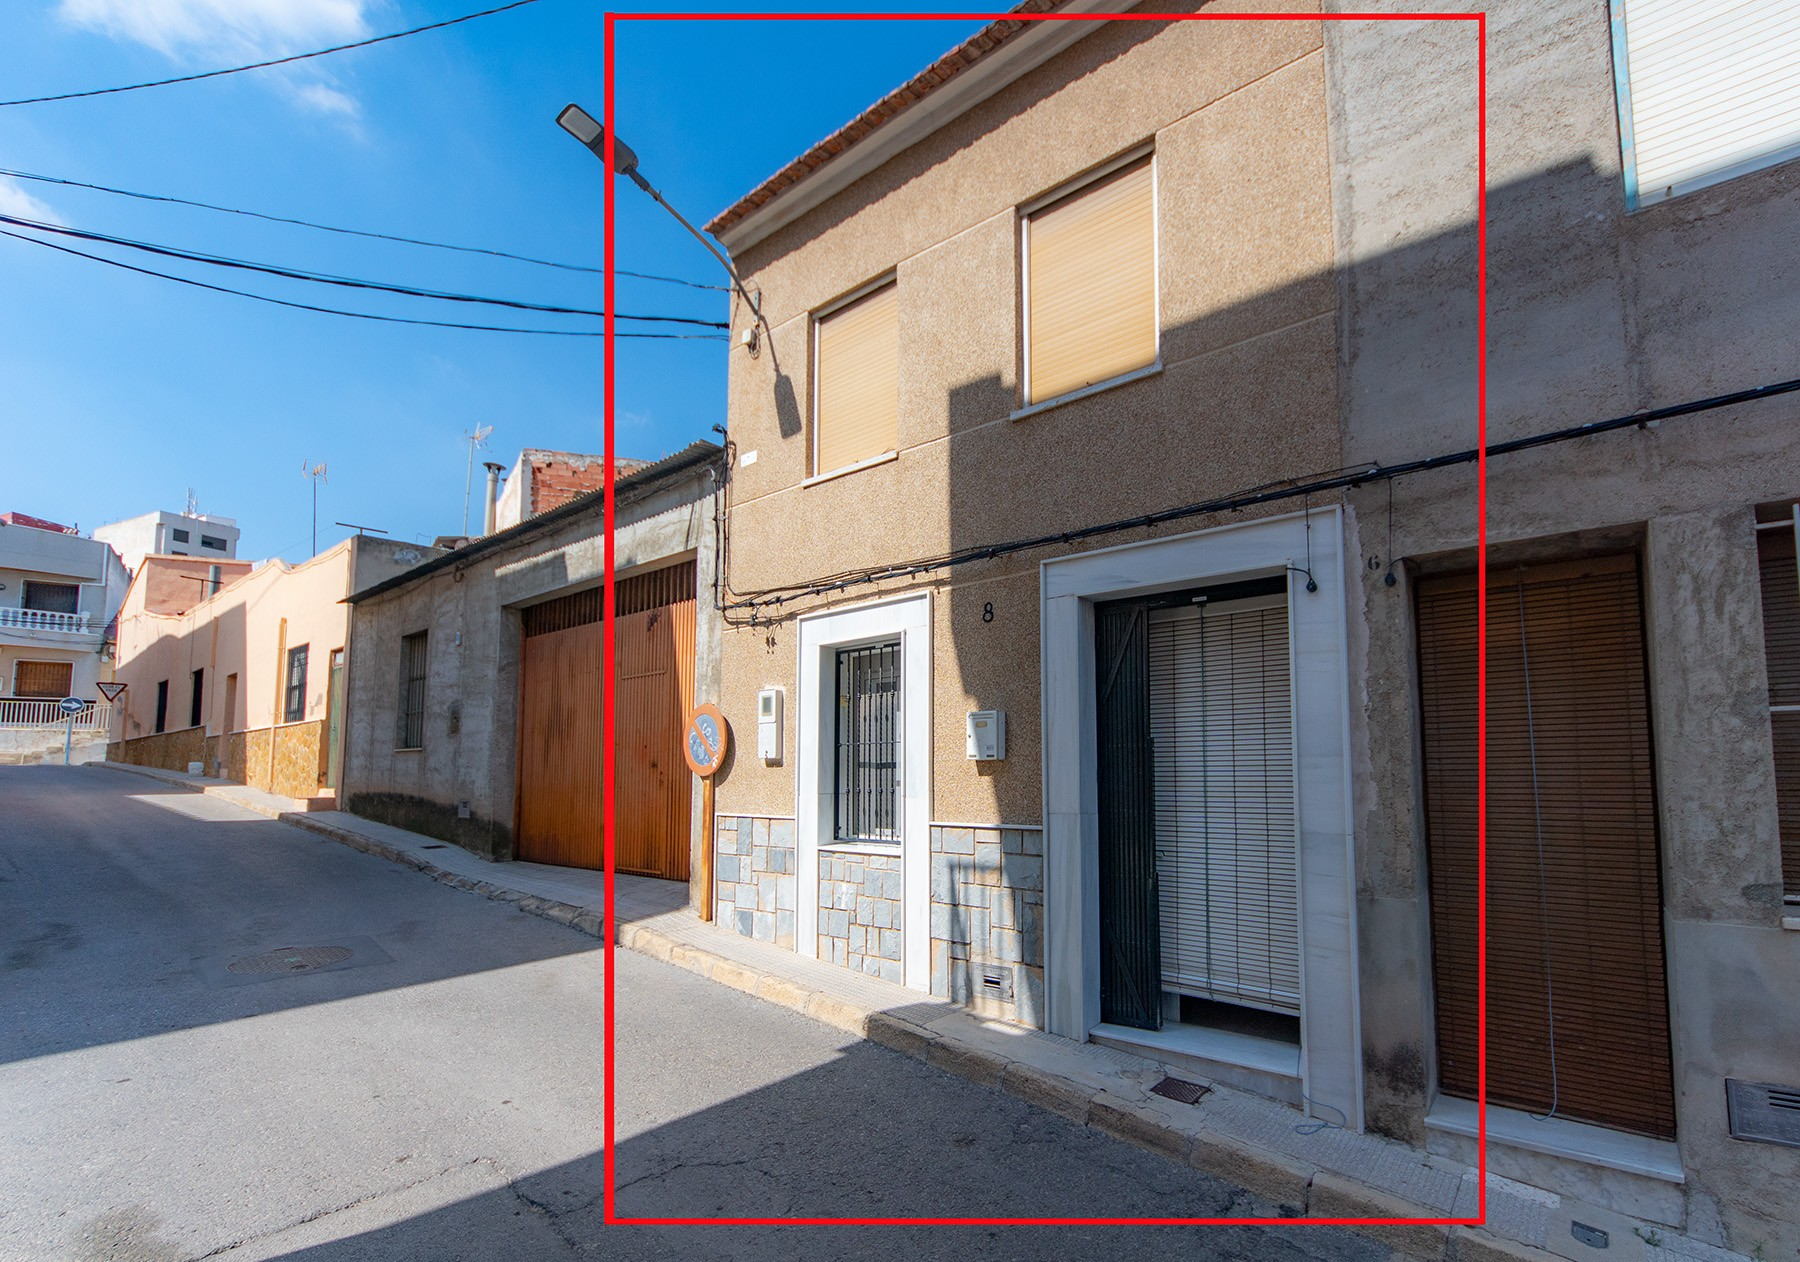 4-bedroom townhouse with rear courtyard, Bigastro